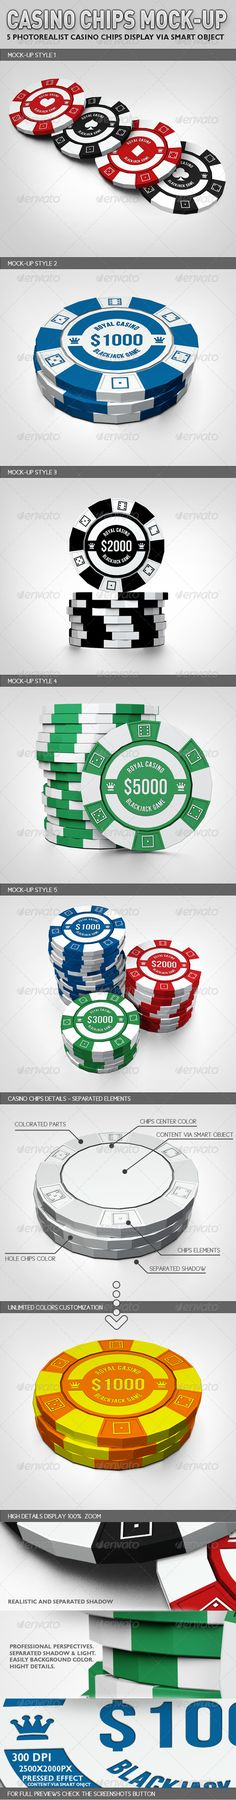 Show casino chips with style. Now, you can create a realistic casino chips display within few seconds. These PSD files make use of Smart-Object feature, so mock-up content can be replaced quickly and easily.